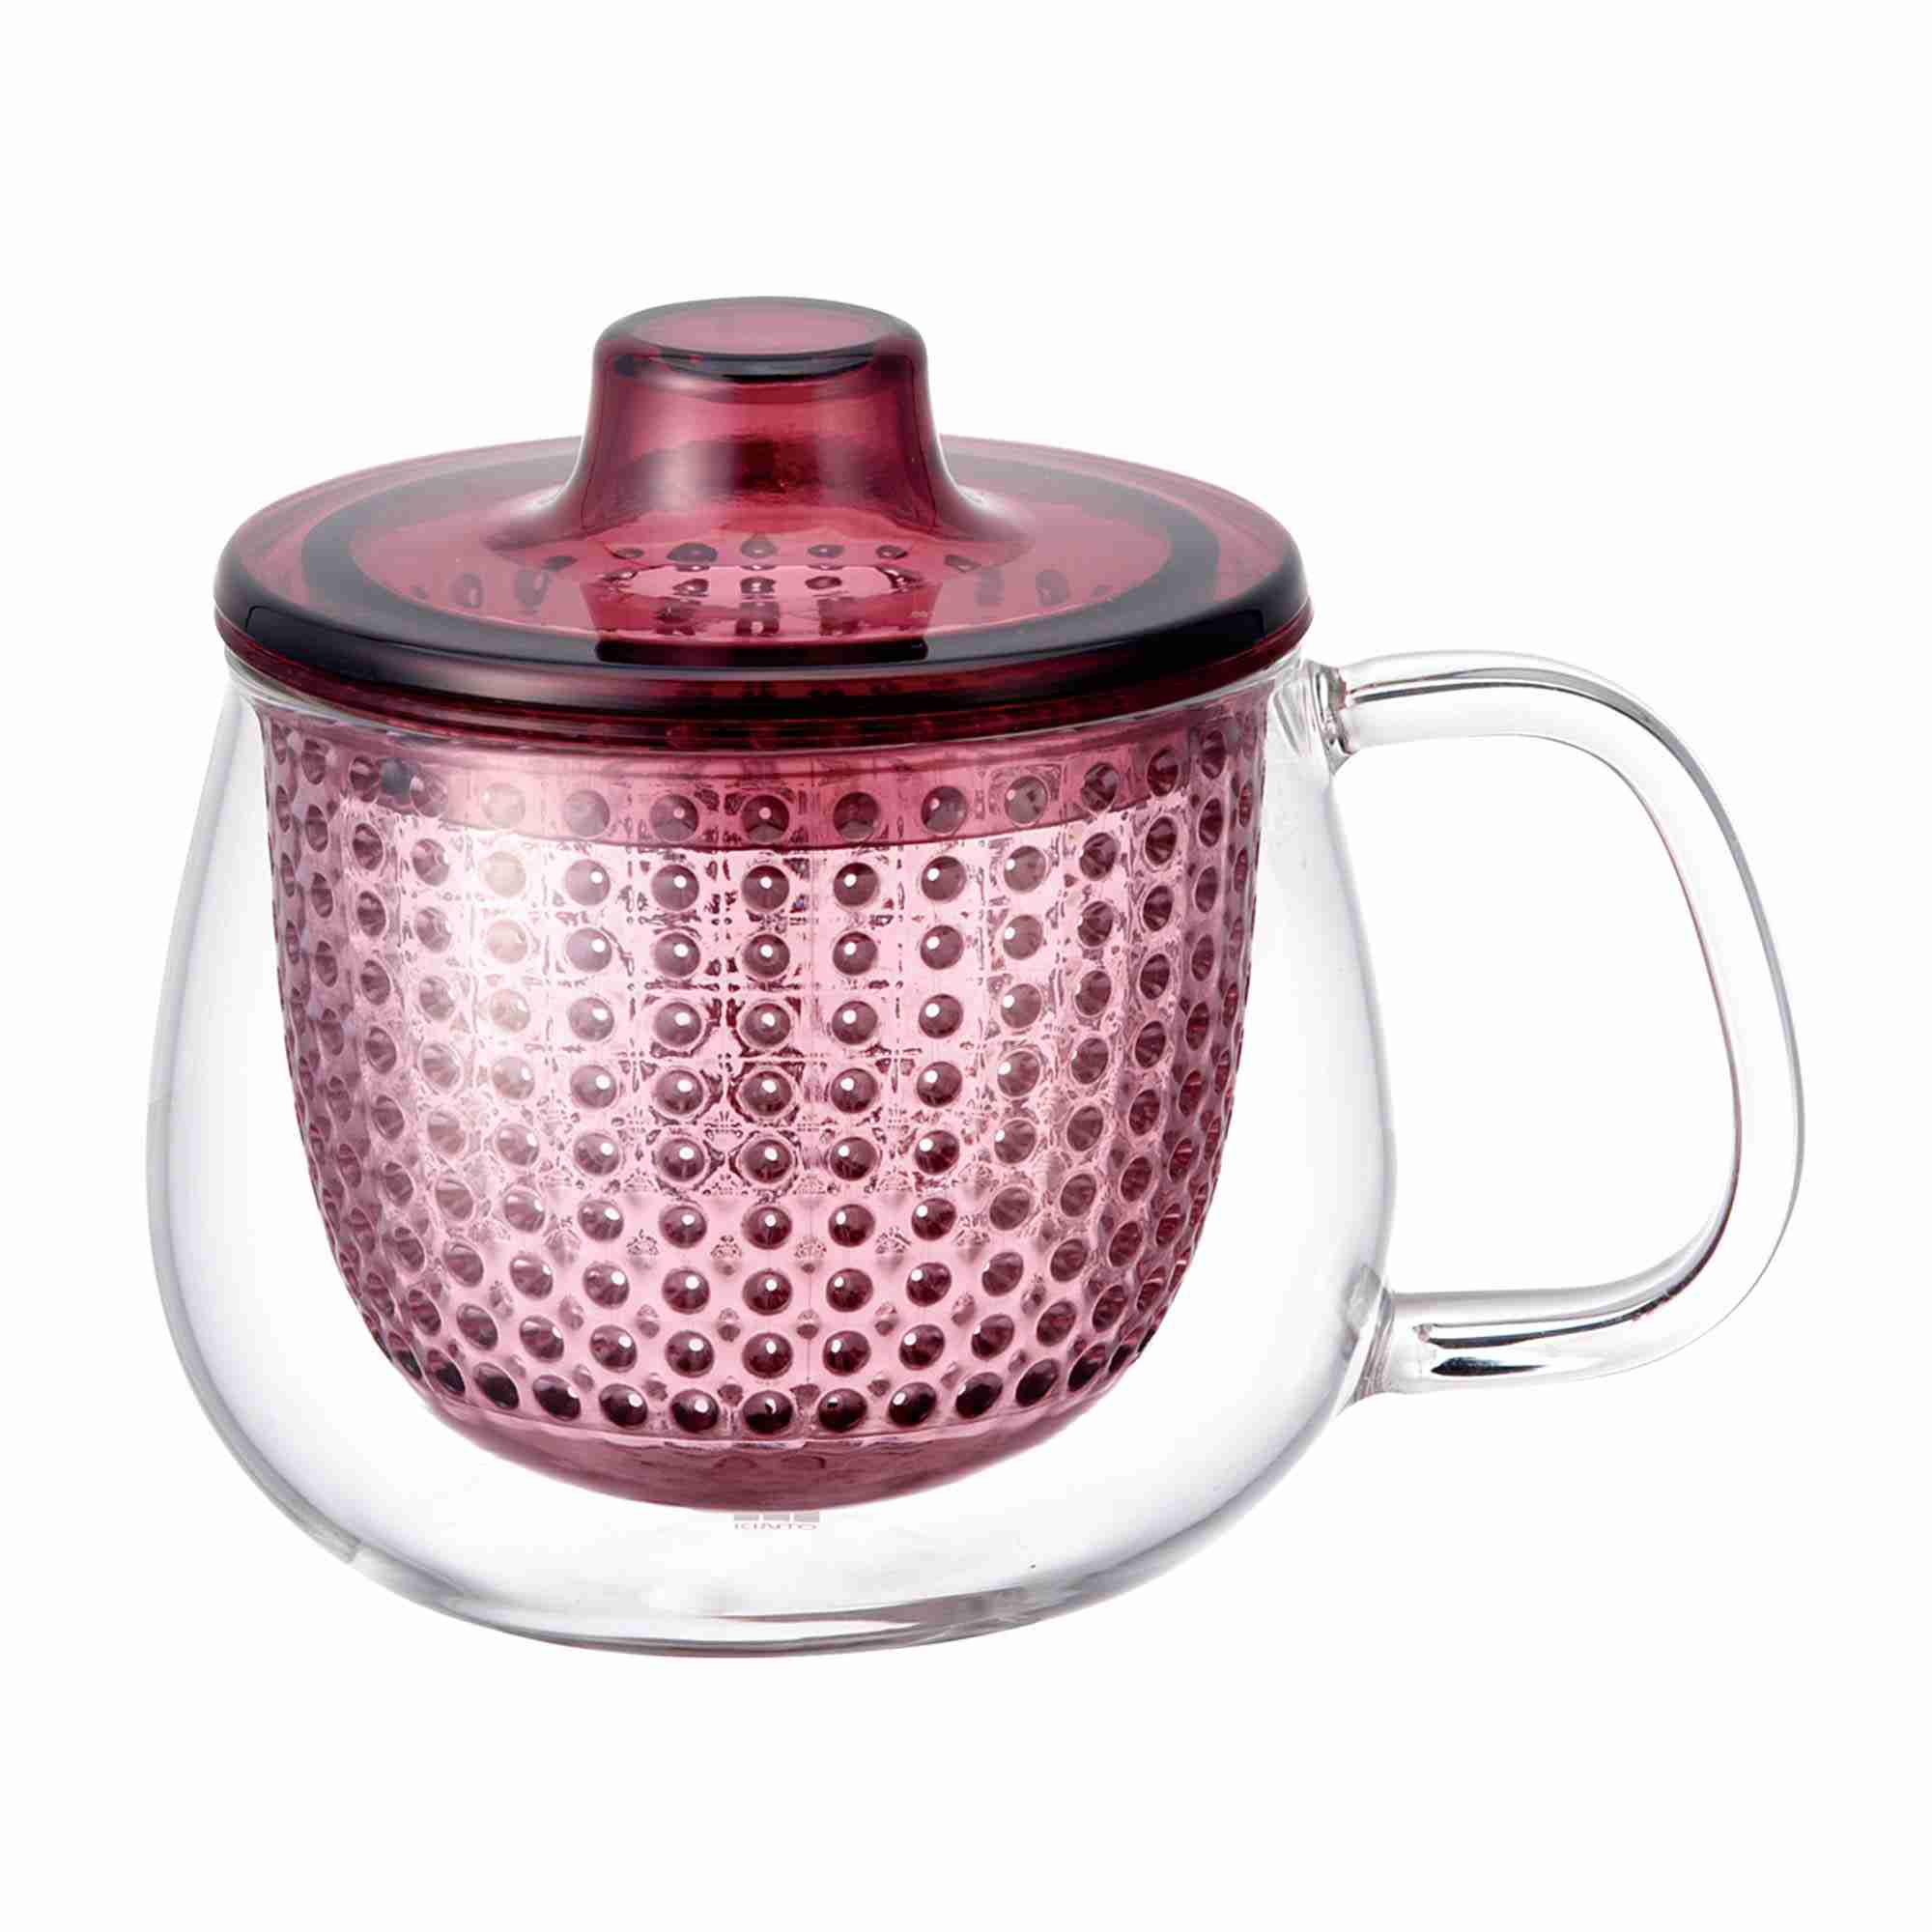 UNIMUG Glass Teapot and Mug in Red by Kinto Japan